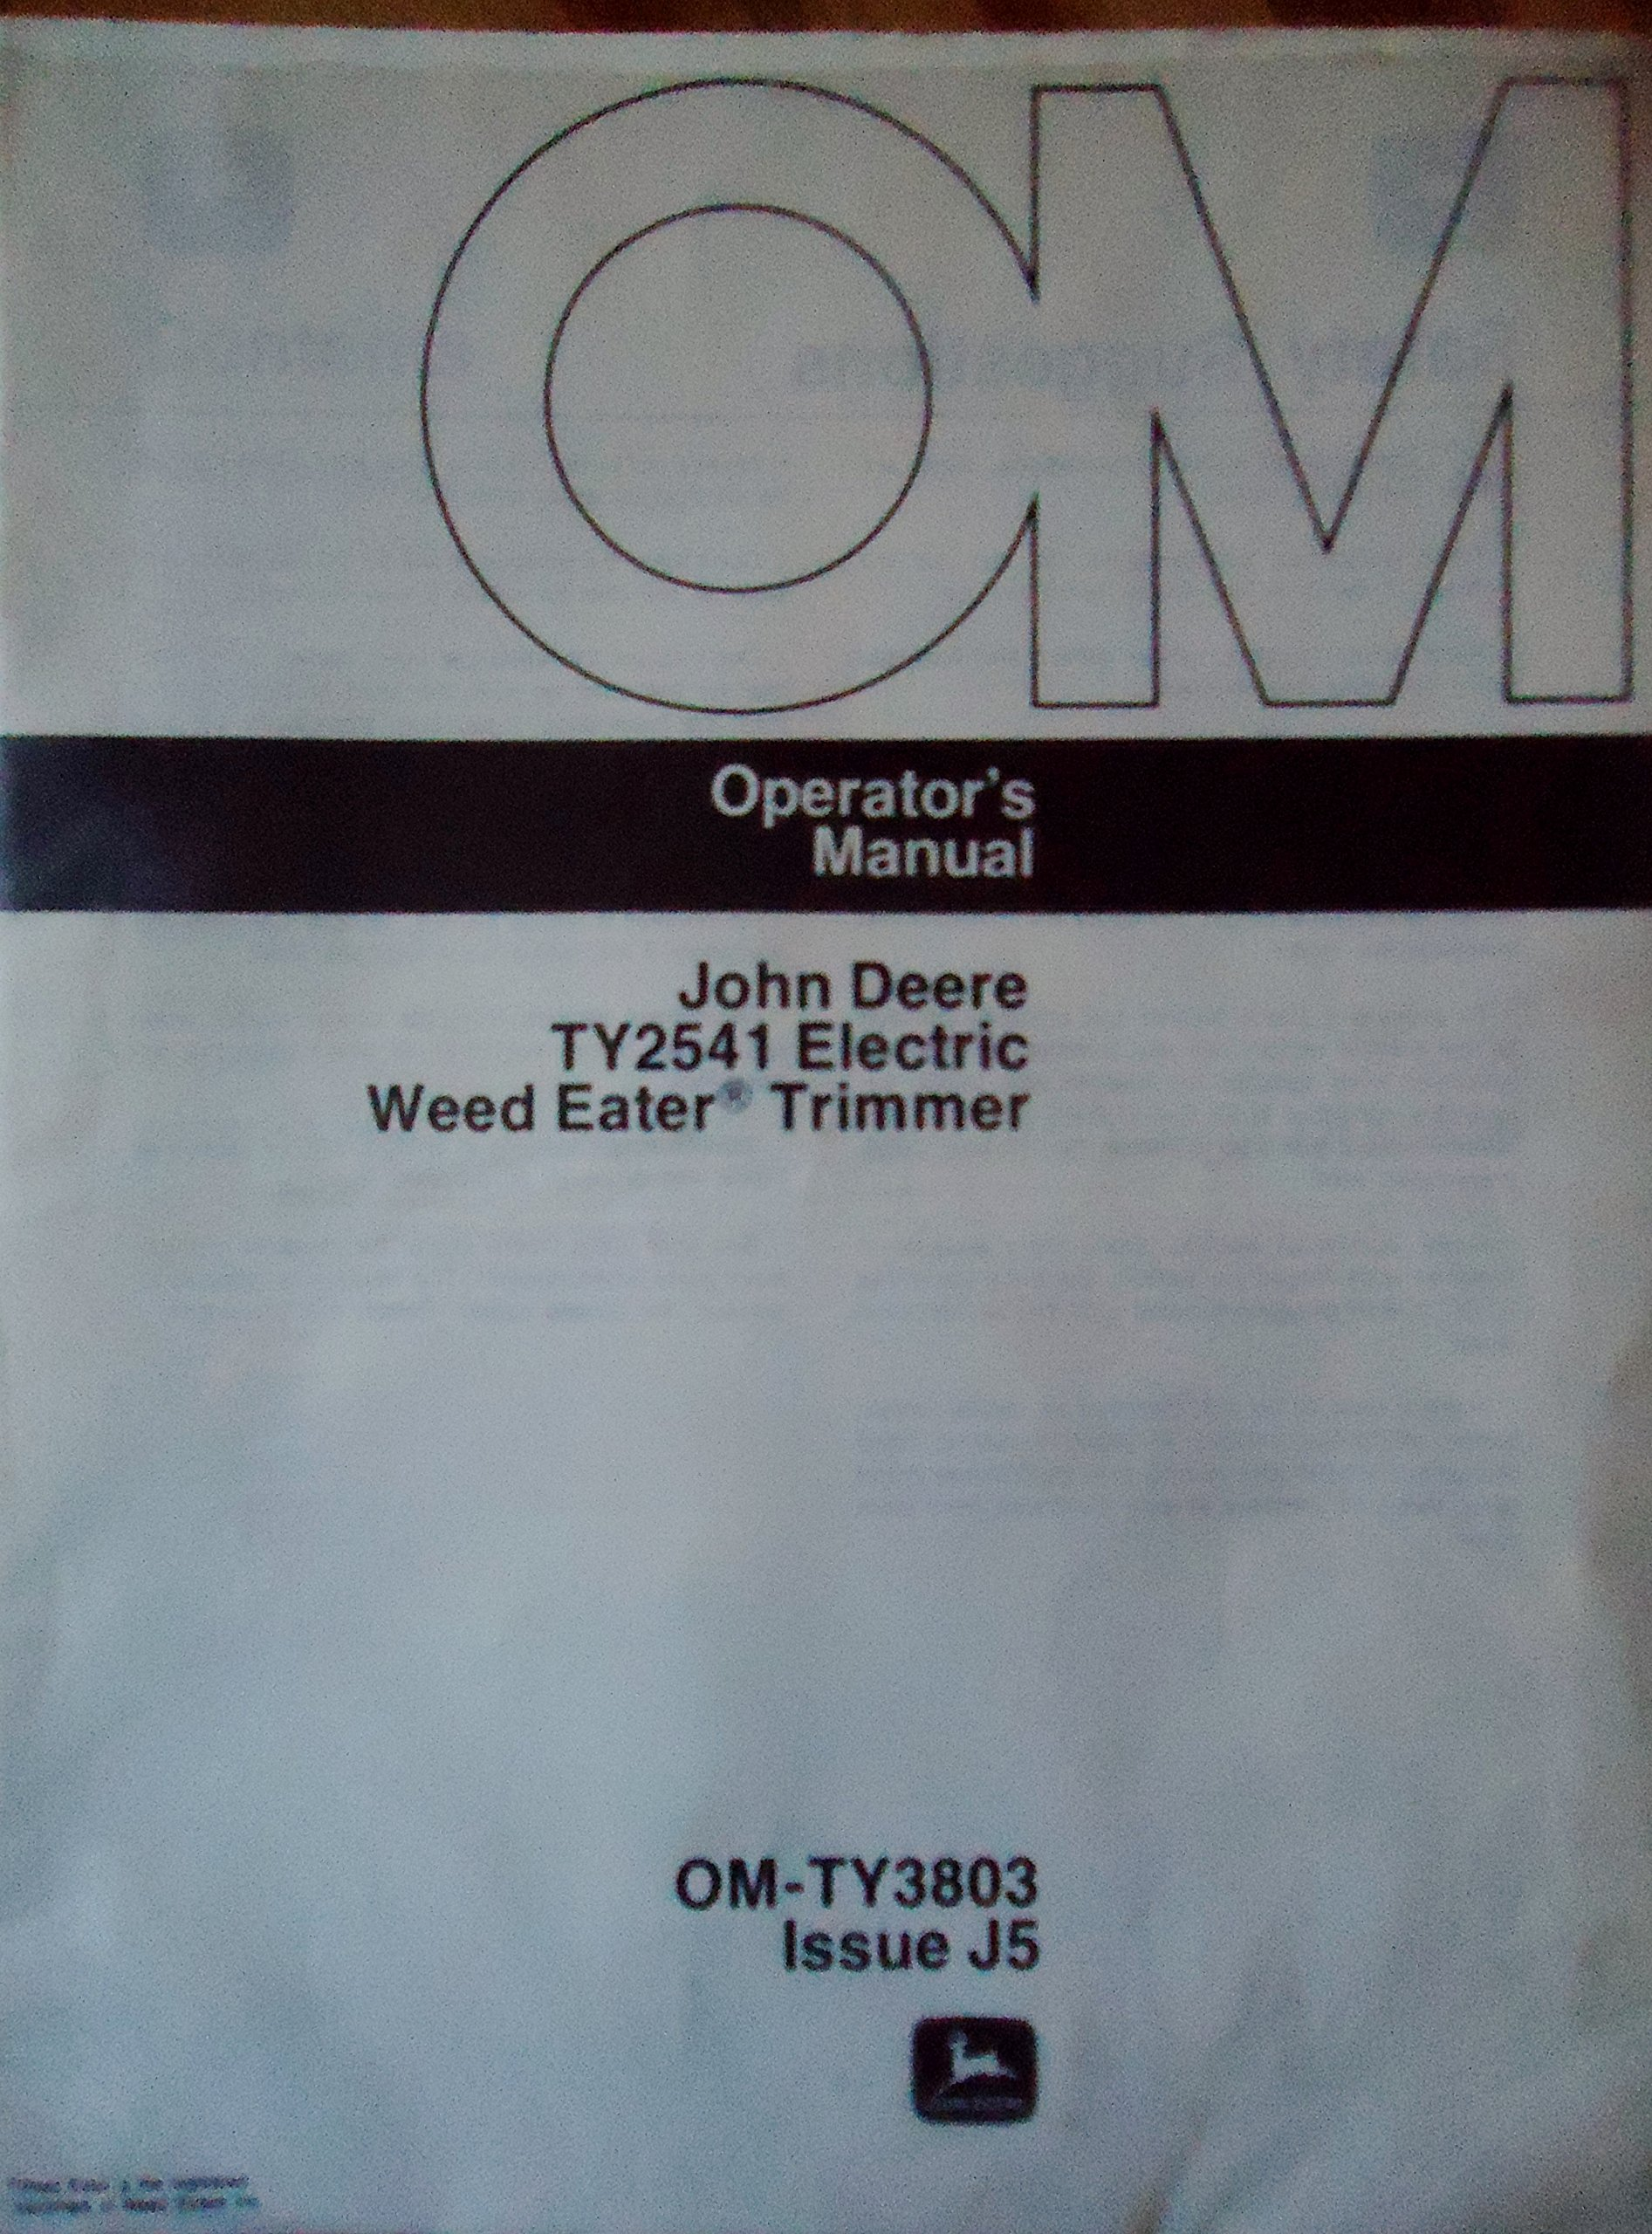 John Deere TY2541 Electric Weed Eater Trimmer Operator's Manual OM-TY3803  Issue J5: John Deere: Amazon.com: Books